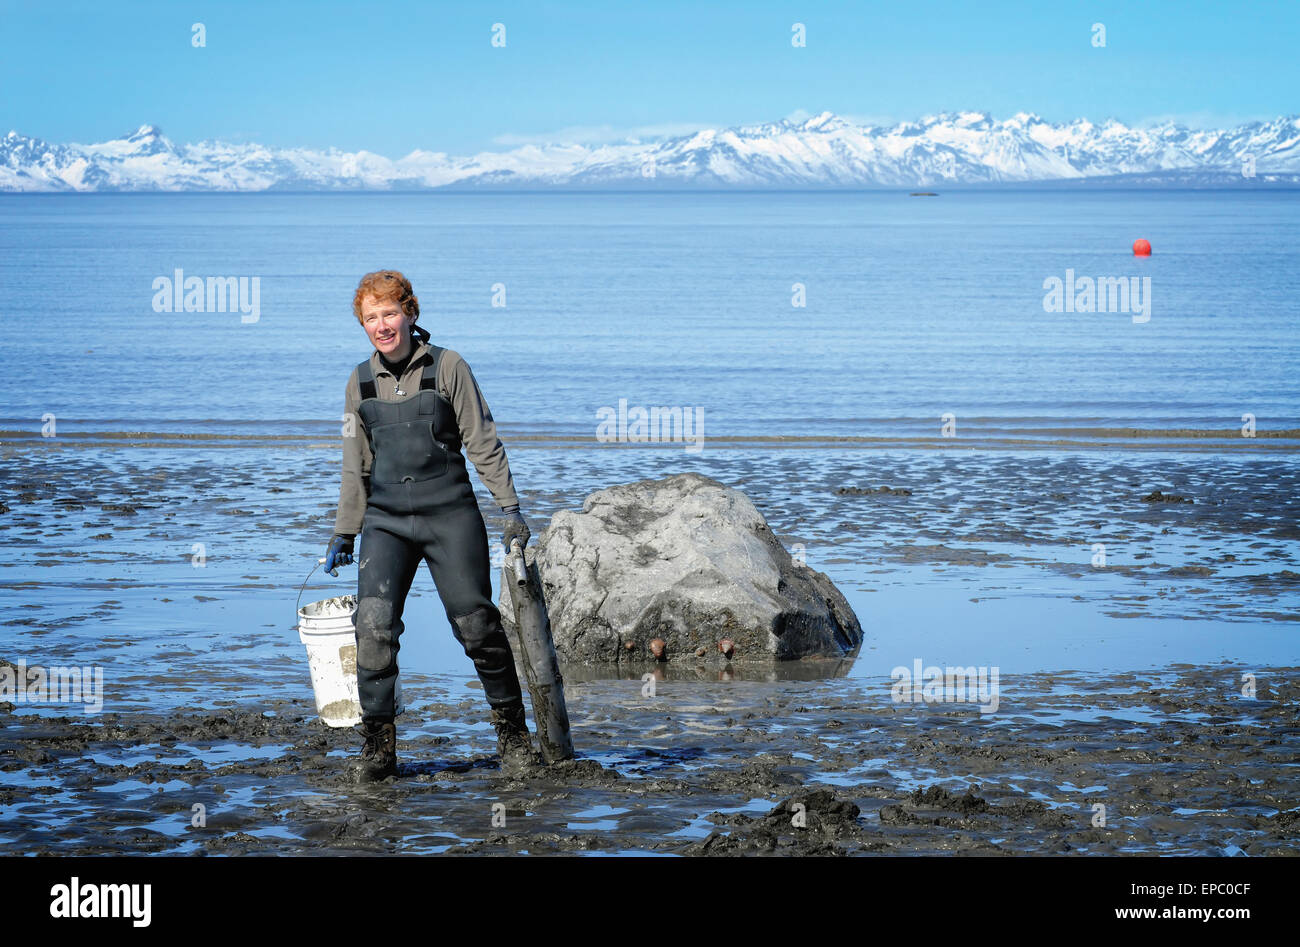 clam gulch middle eastern single women Gulch spawning in eastern cook inlet occurs in late july and august with the broadcast of 6–10 million eggs/female clam coinciding with sperm broadcast from males large females are more fecund.